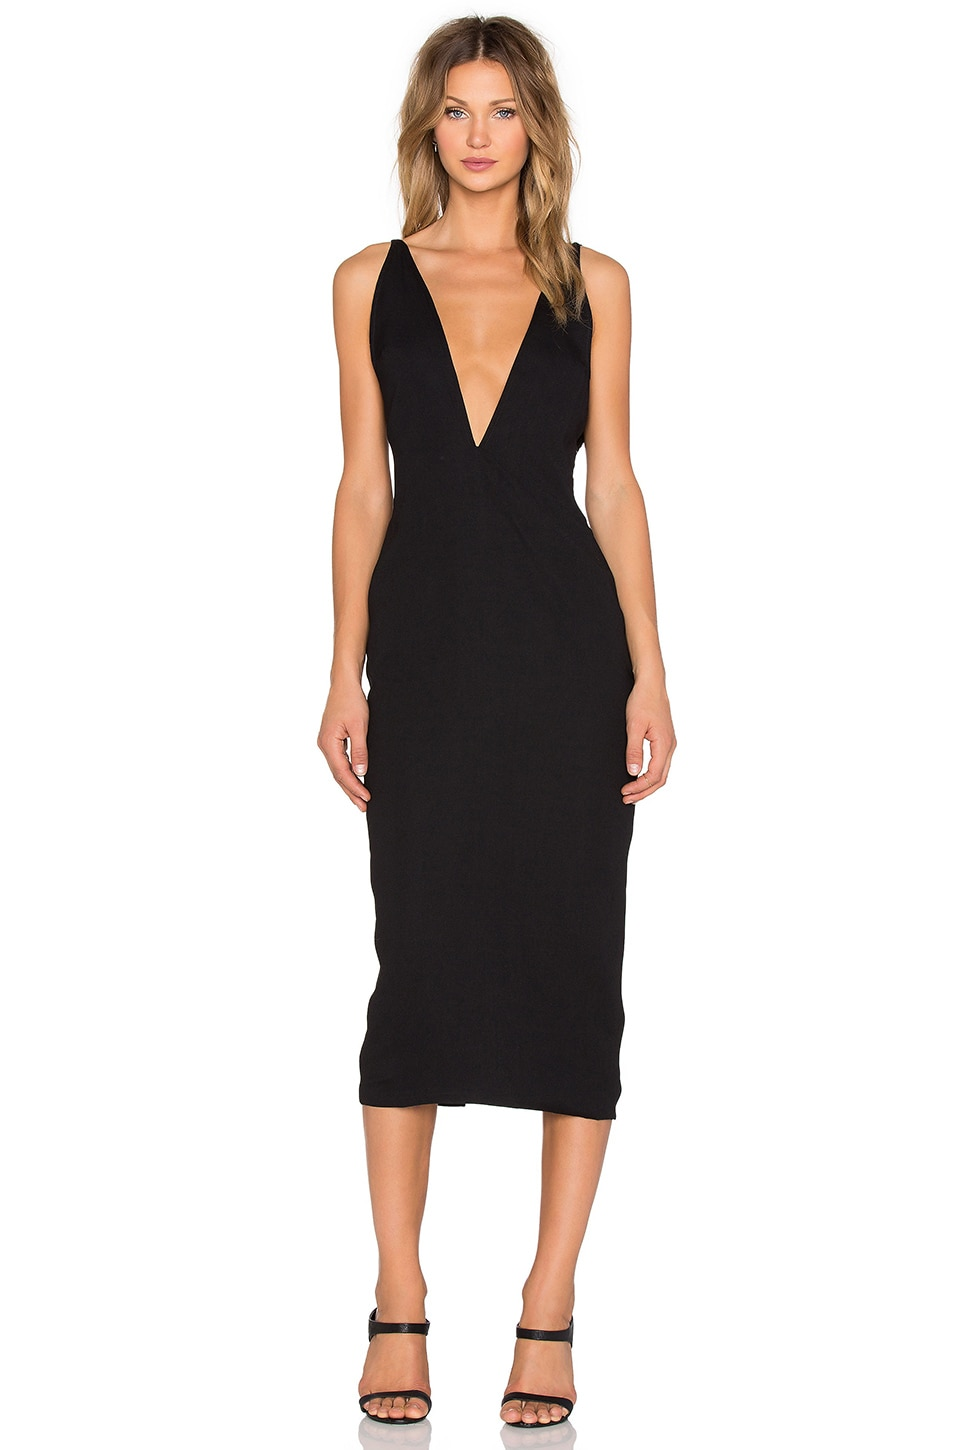 Maurie & Eve Cloe Dress in Black